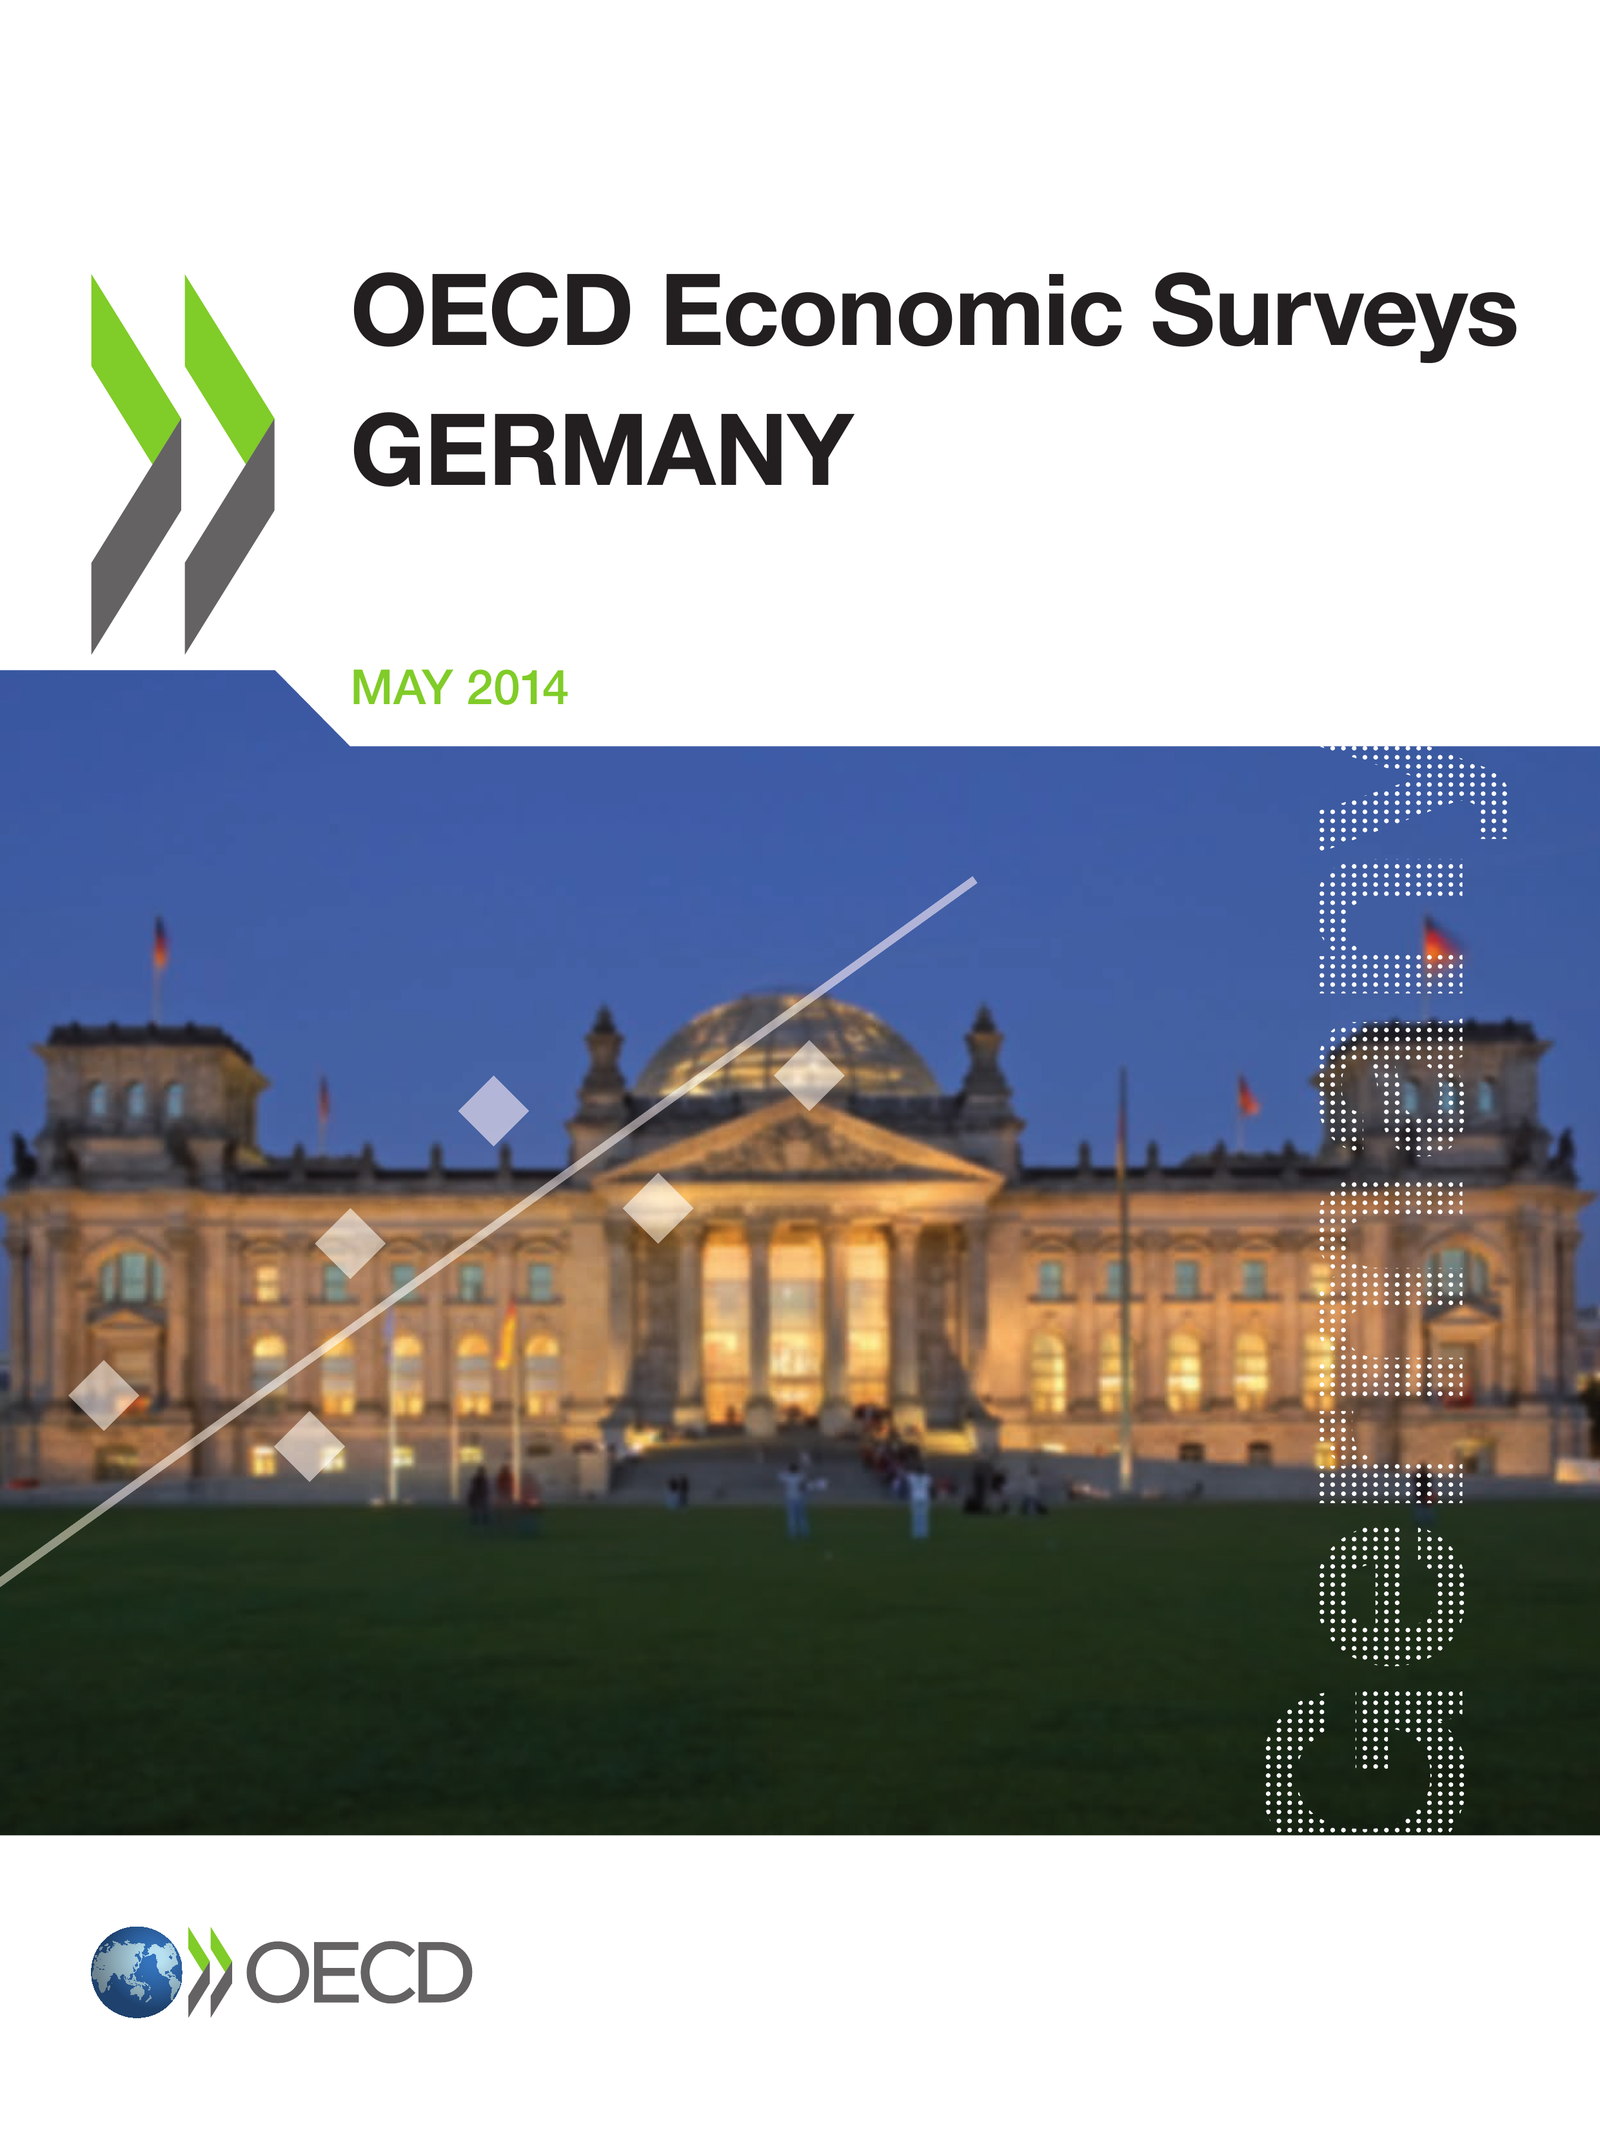 OECD Economic Surveys: Germany 2014